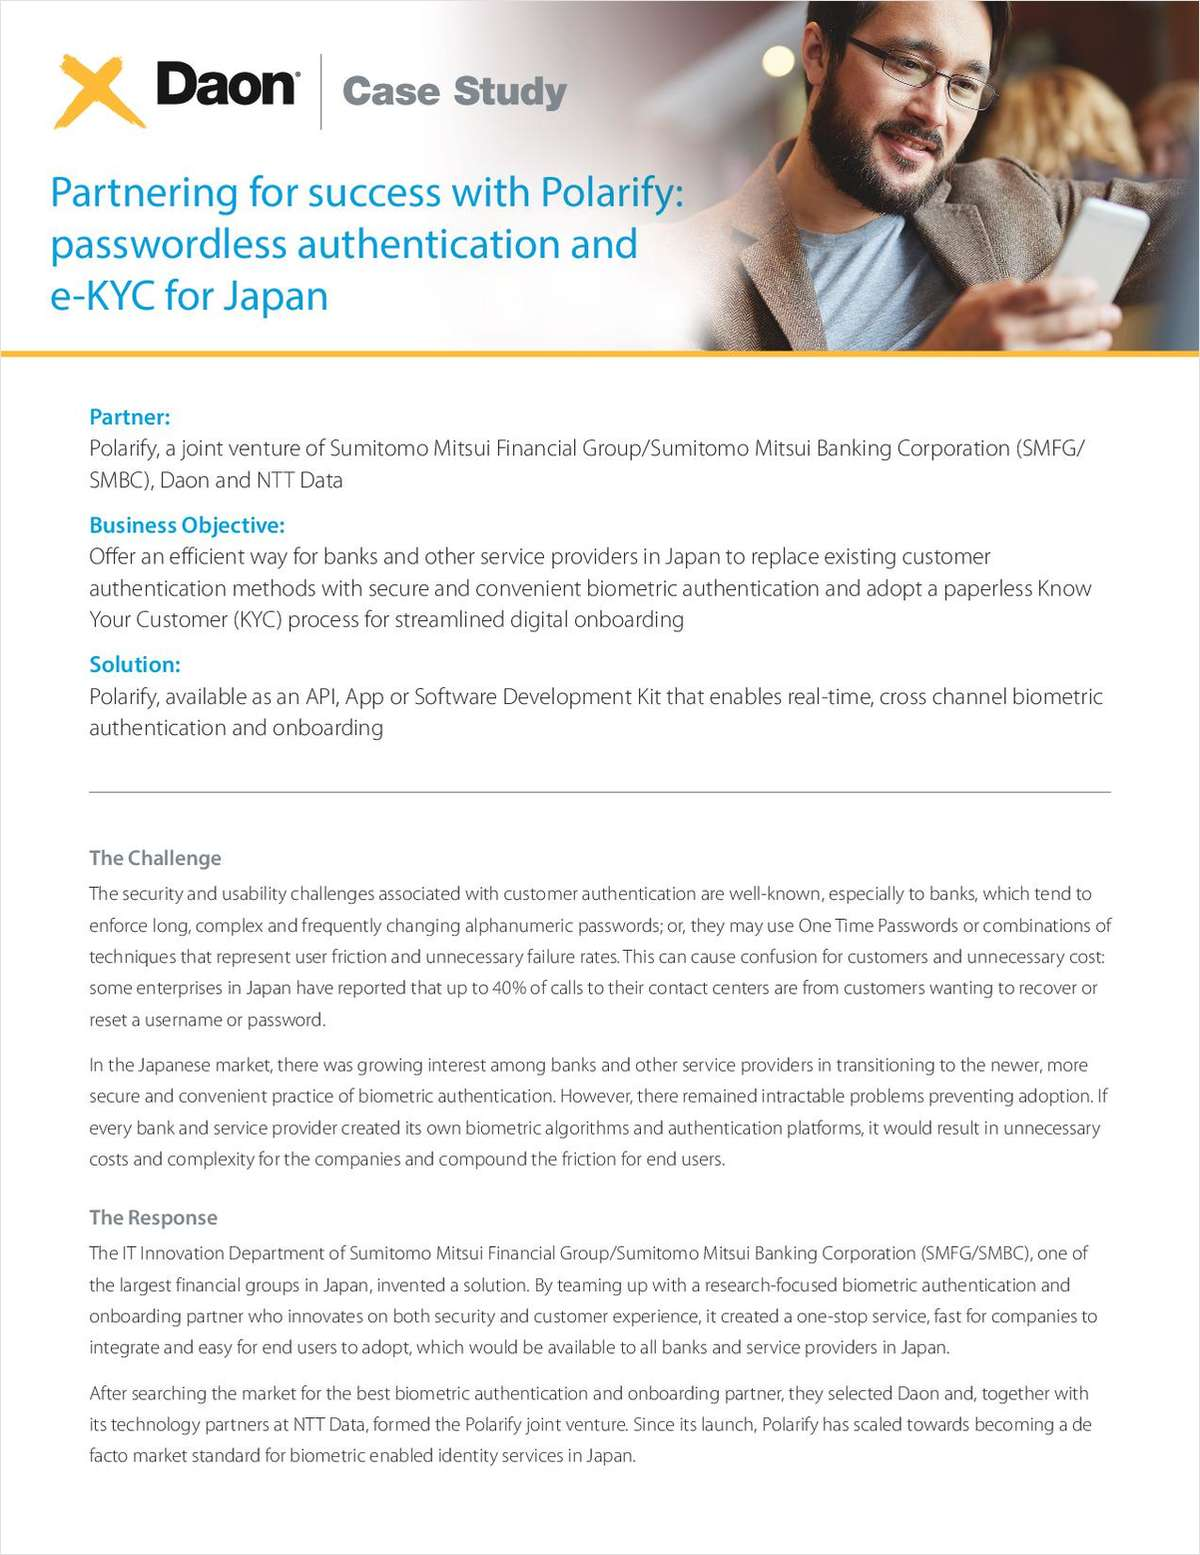 How Sumitomo Mitsui, NTT, and Daon Partner to Bring Passwordless Authentication and e-KYC to Japan